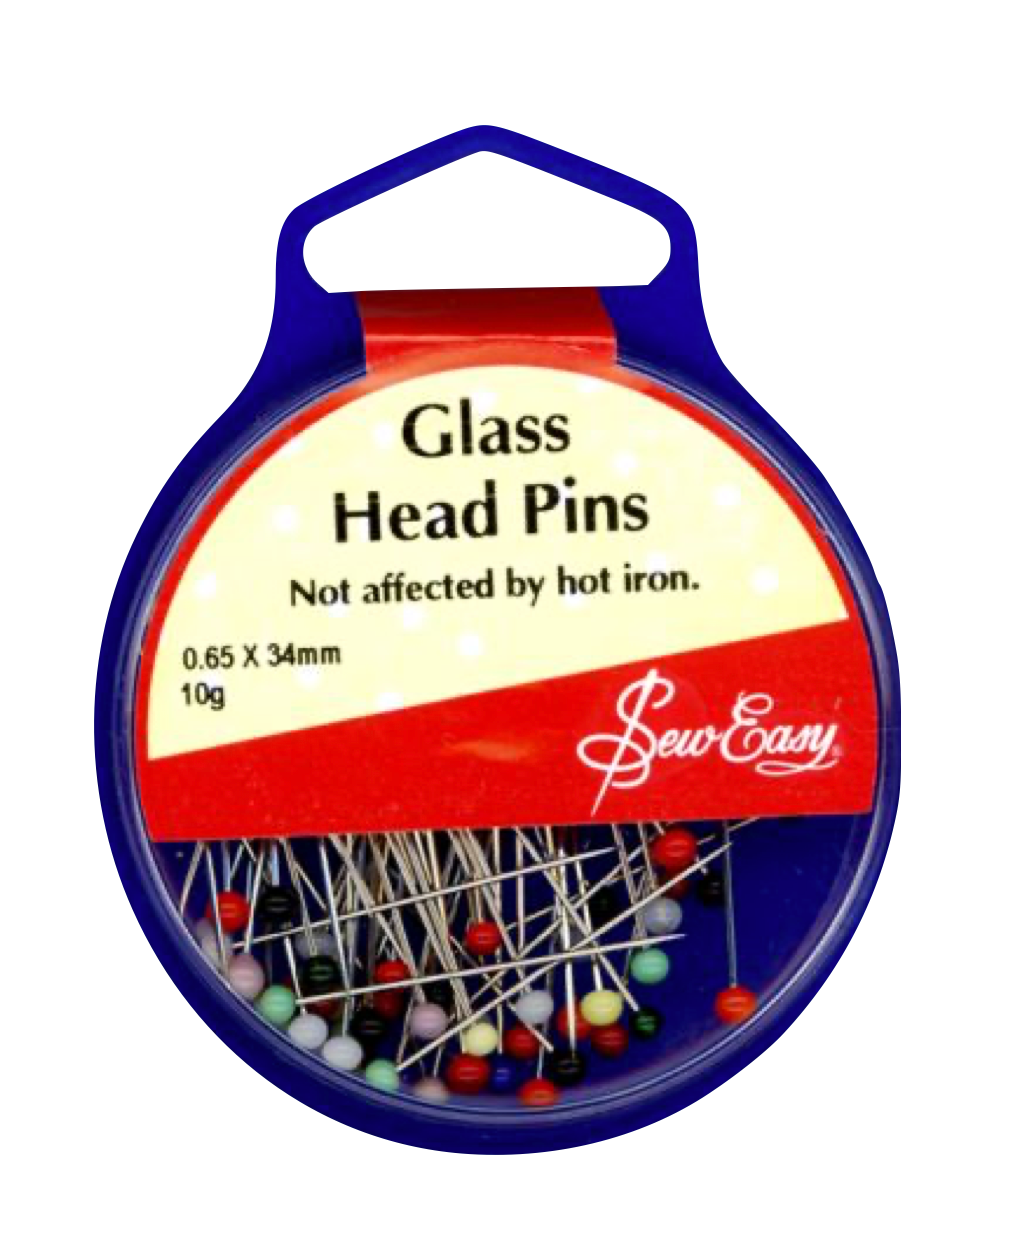 Glass Head Pins 34mm x 0.65mm